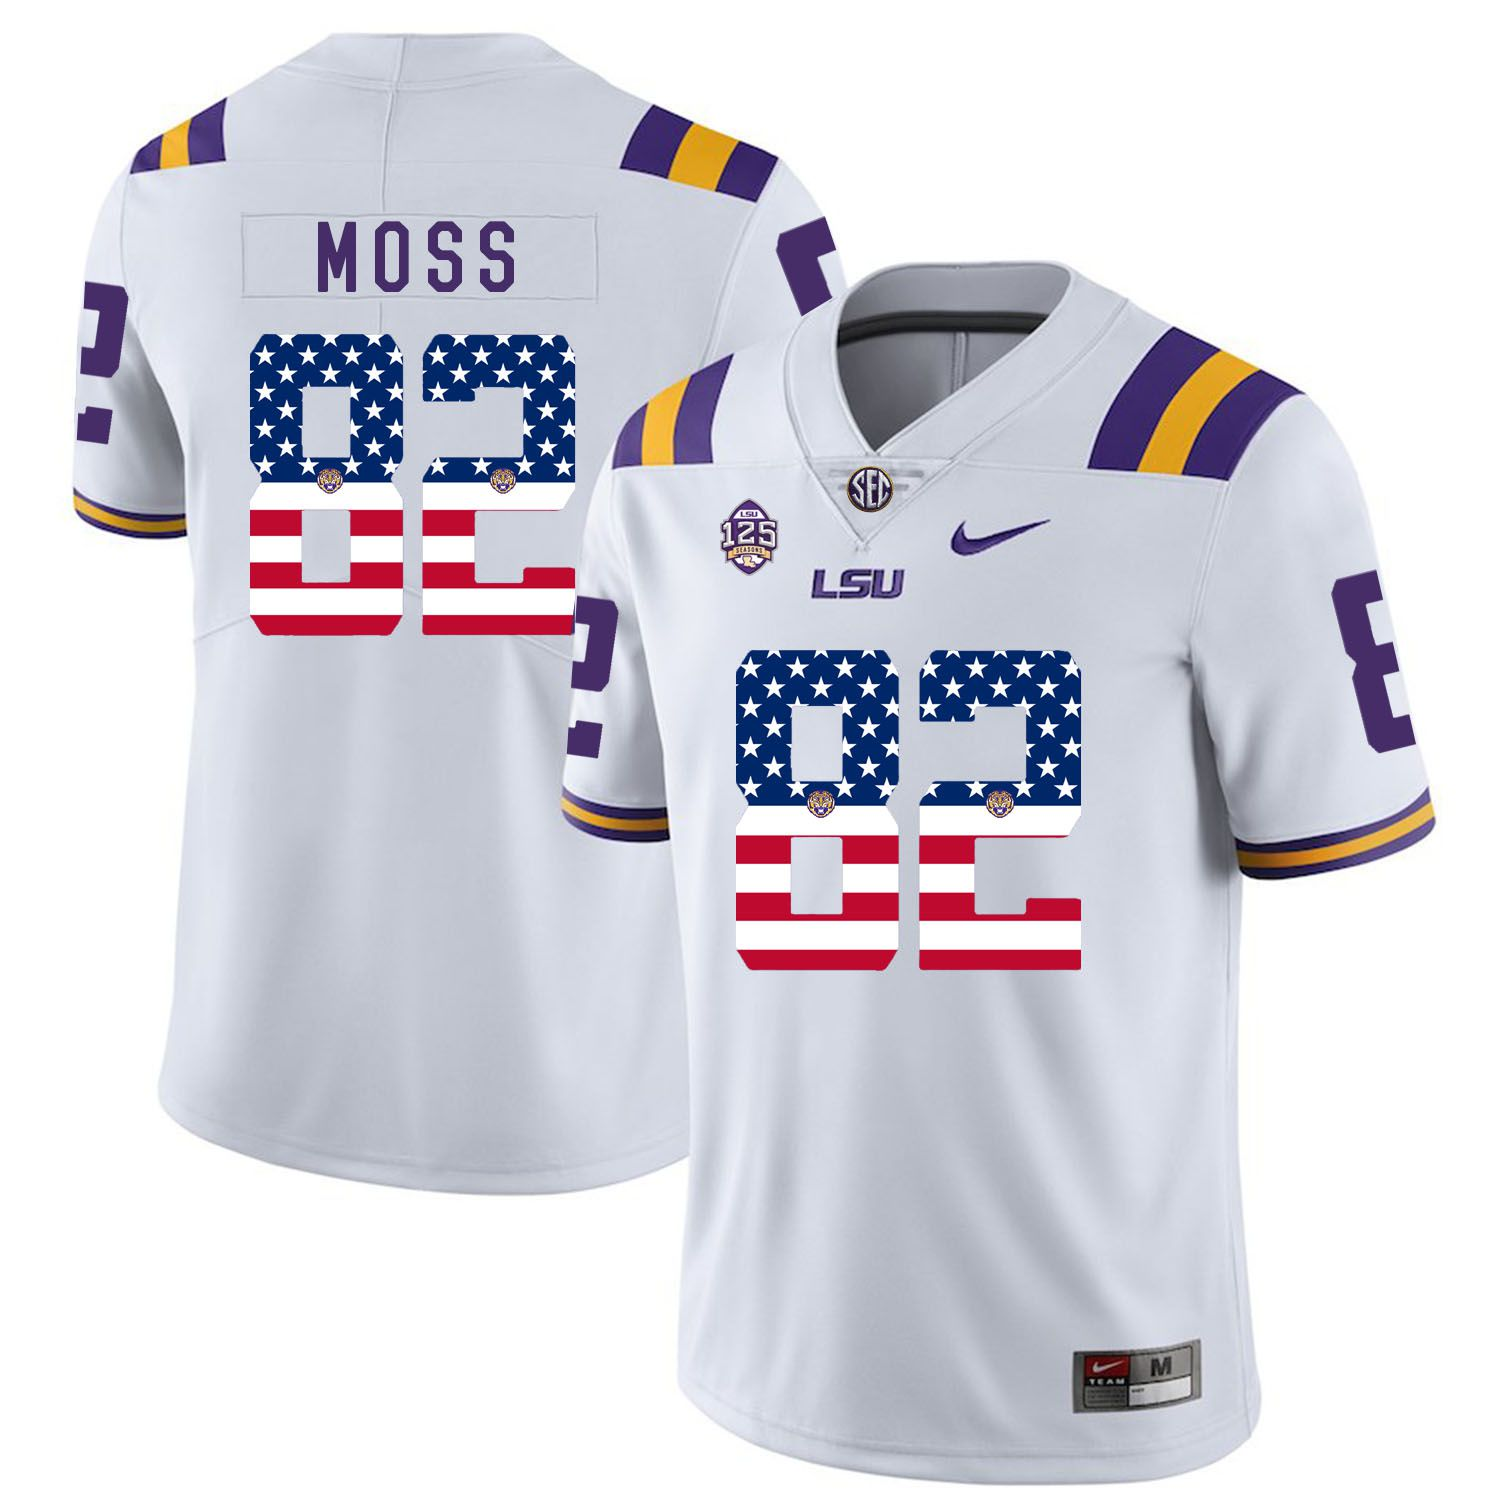 Men LSU Tigers 82 Moss White Flag Customized NCAA Jerseys